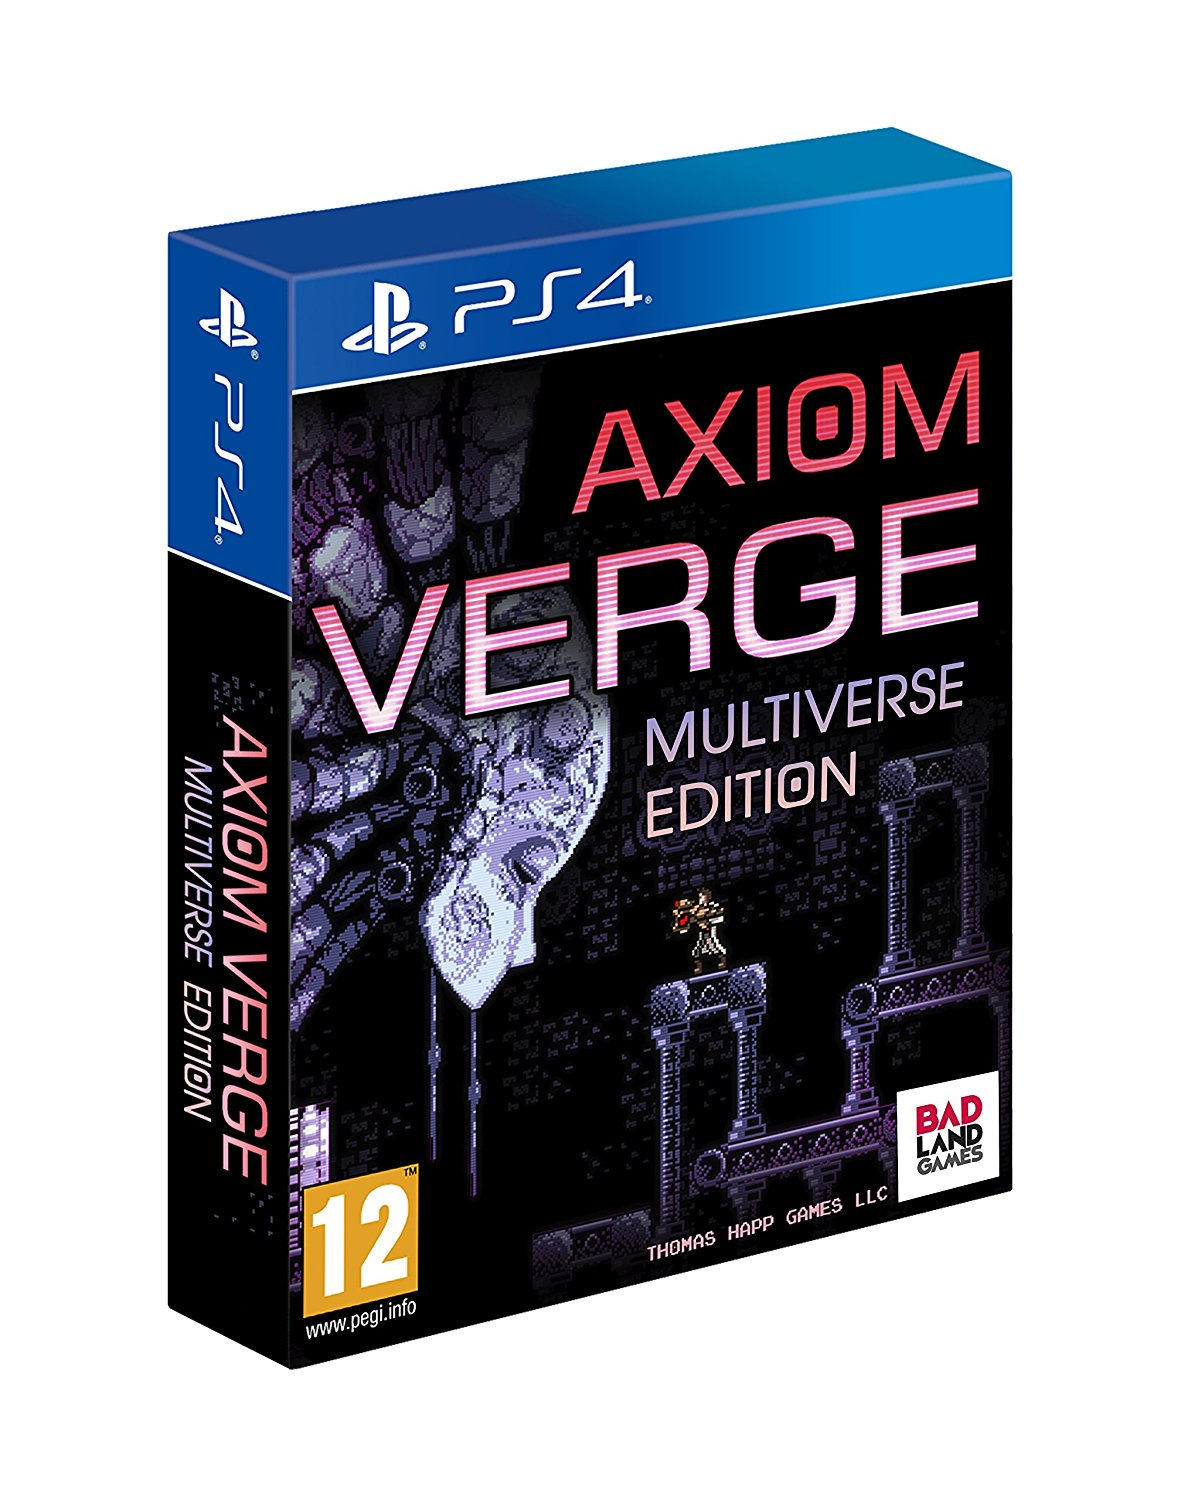 Axiom Verge Multiverse Edition -  PlayStation 4 - Video Games by Maximum Games Ltd (UK Stock Account) The Chelsea Gamer